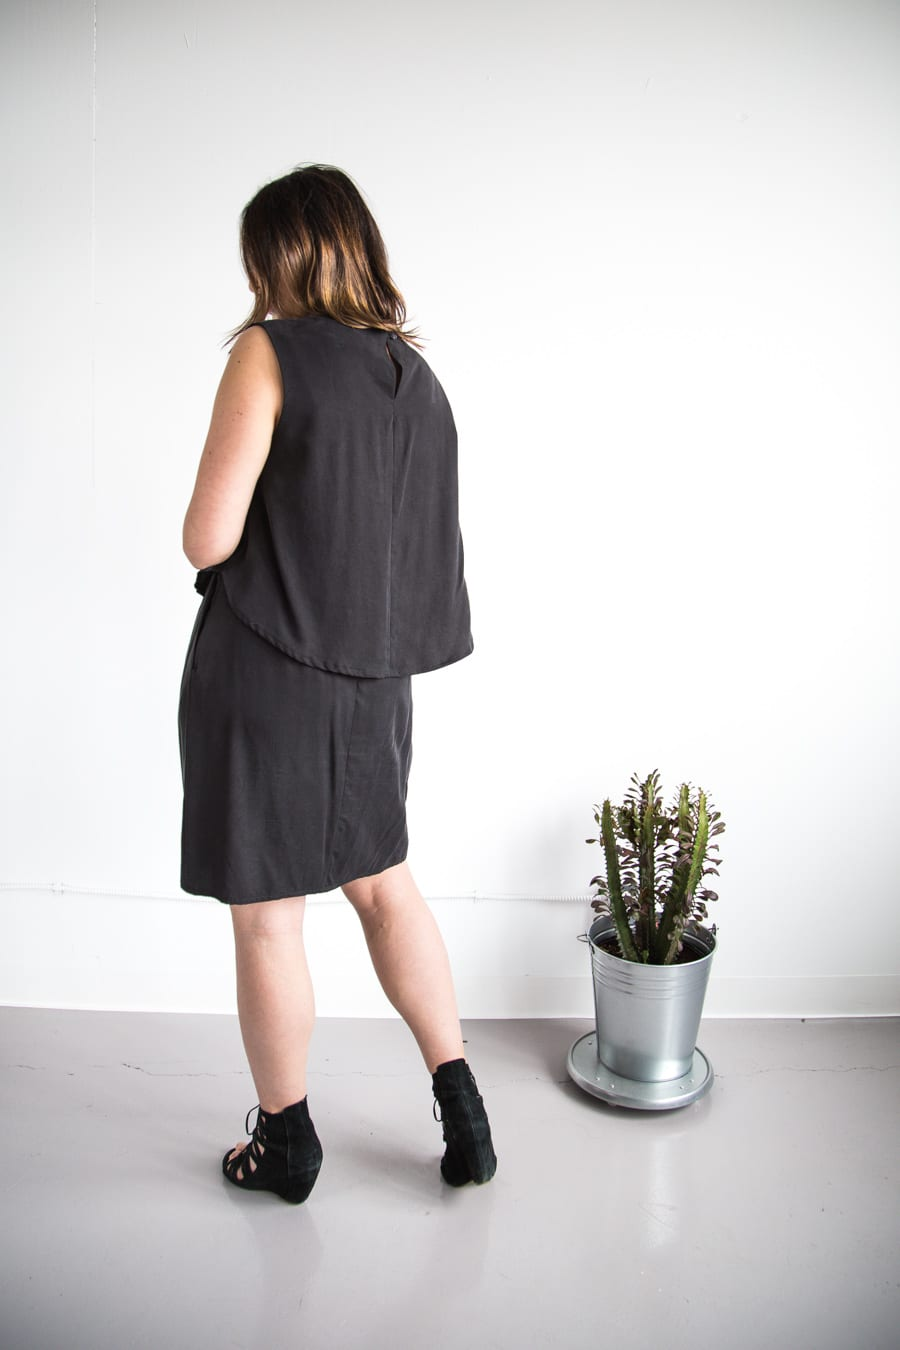 Rachel Comey dress in black tencel twill // Vogue 1501 sewing pattern // Handmade by Closet Case Patterns